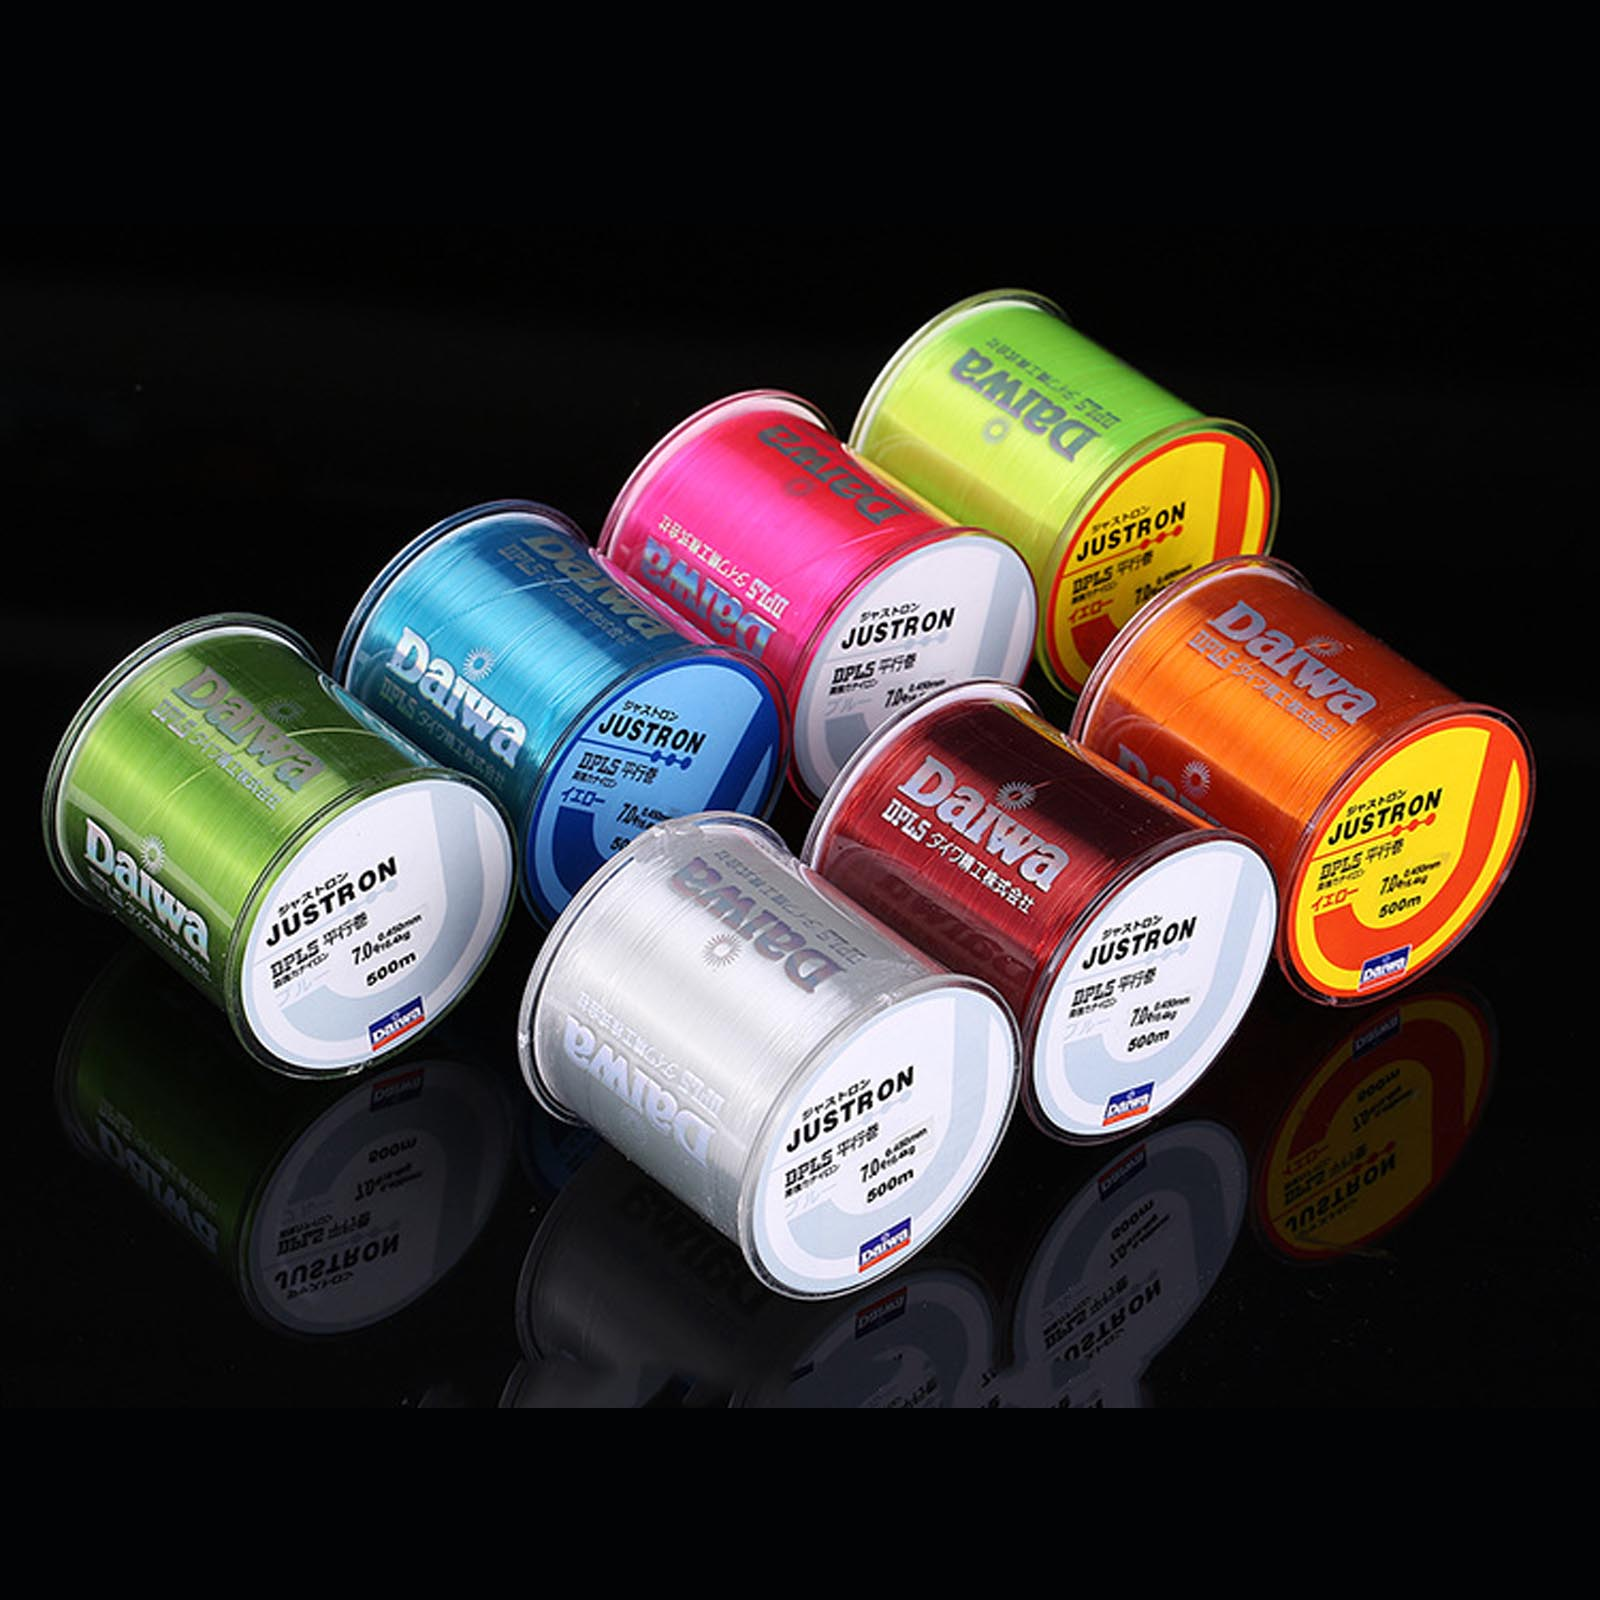 DNDYUJU 100M 500M Nylon Fishing Line Super Strong Monofilament Material Carp Fishing